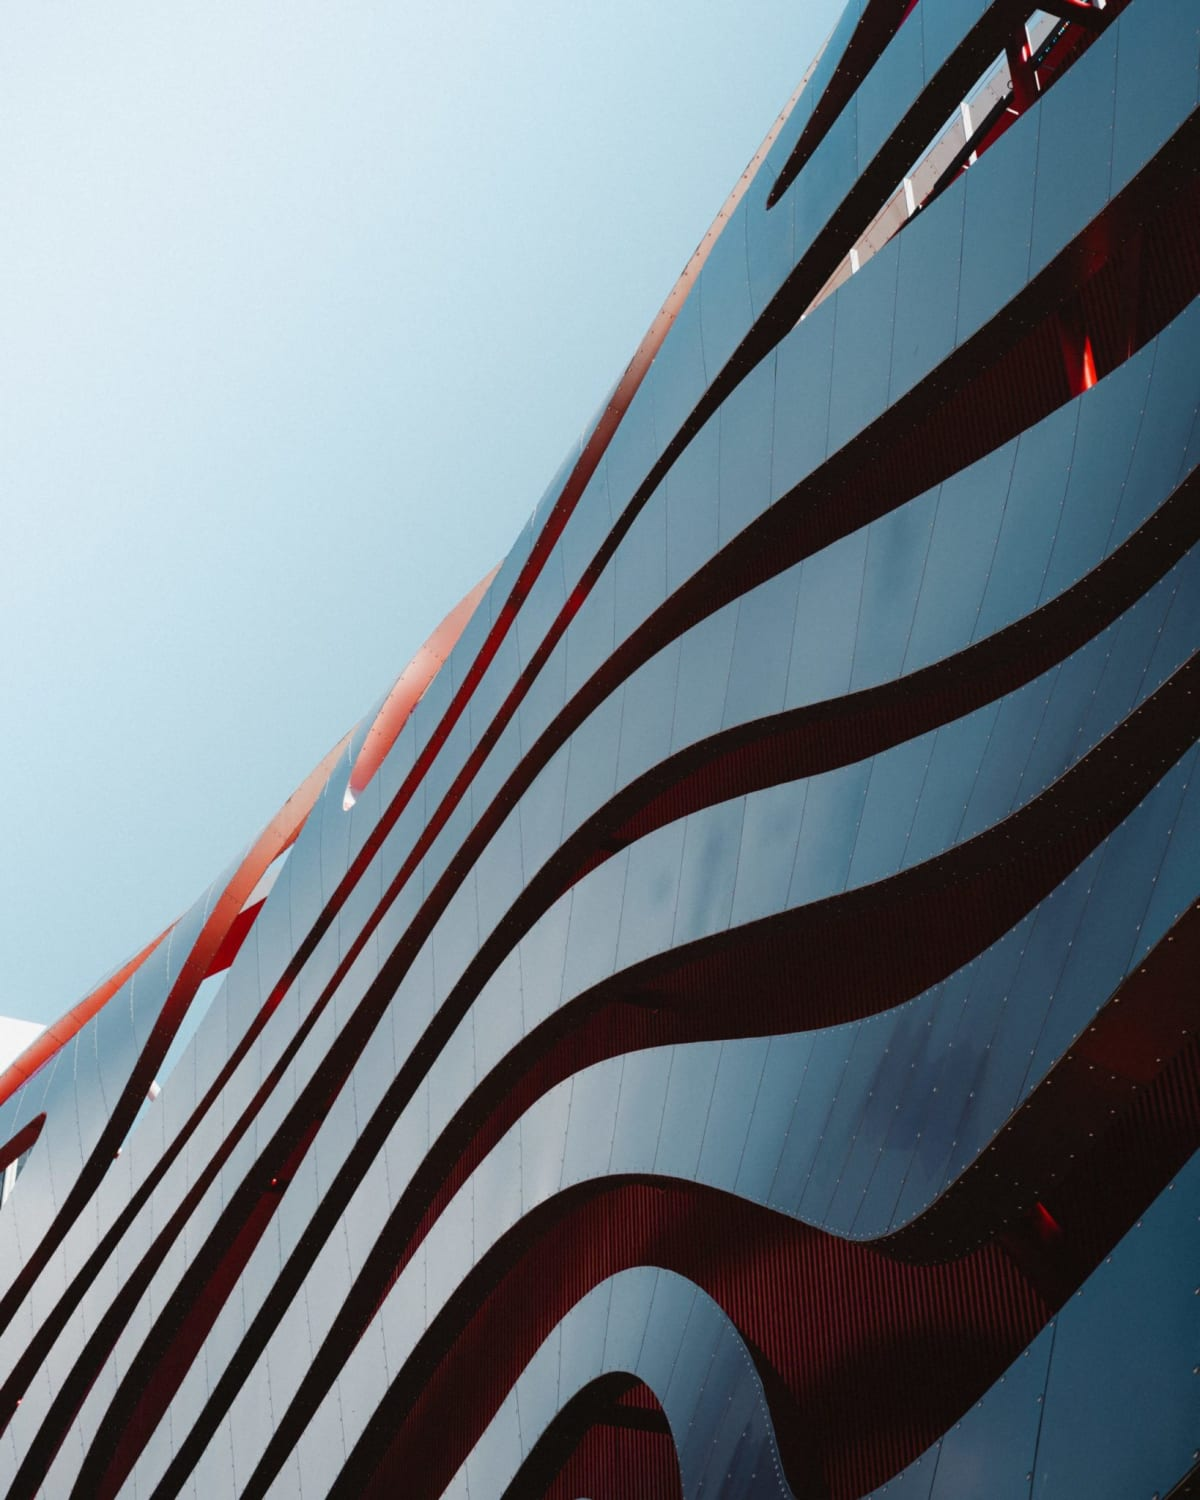 The Petersen Automotive Museum (photo by Austin Poon)